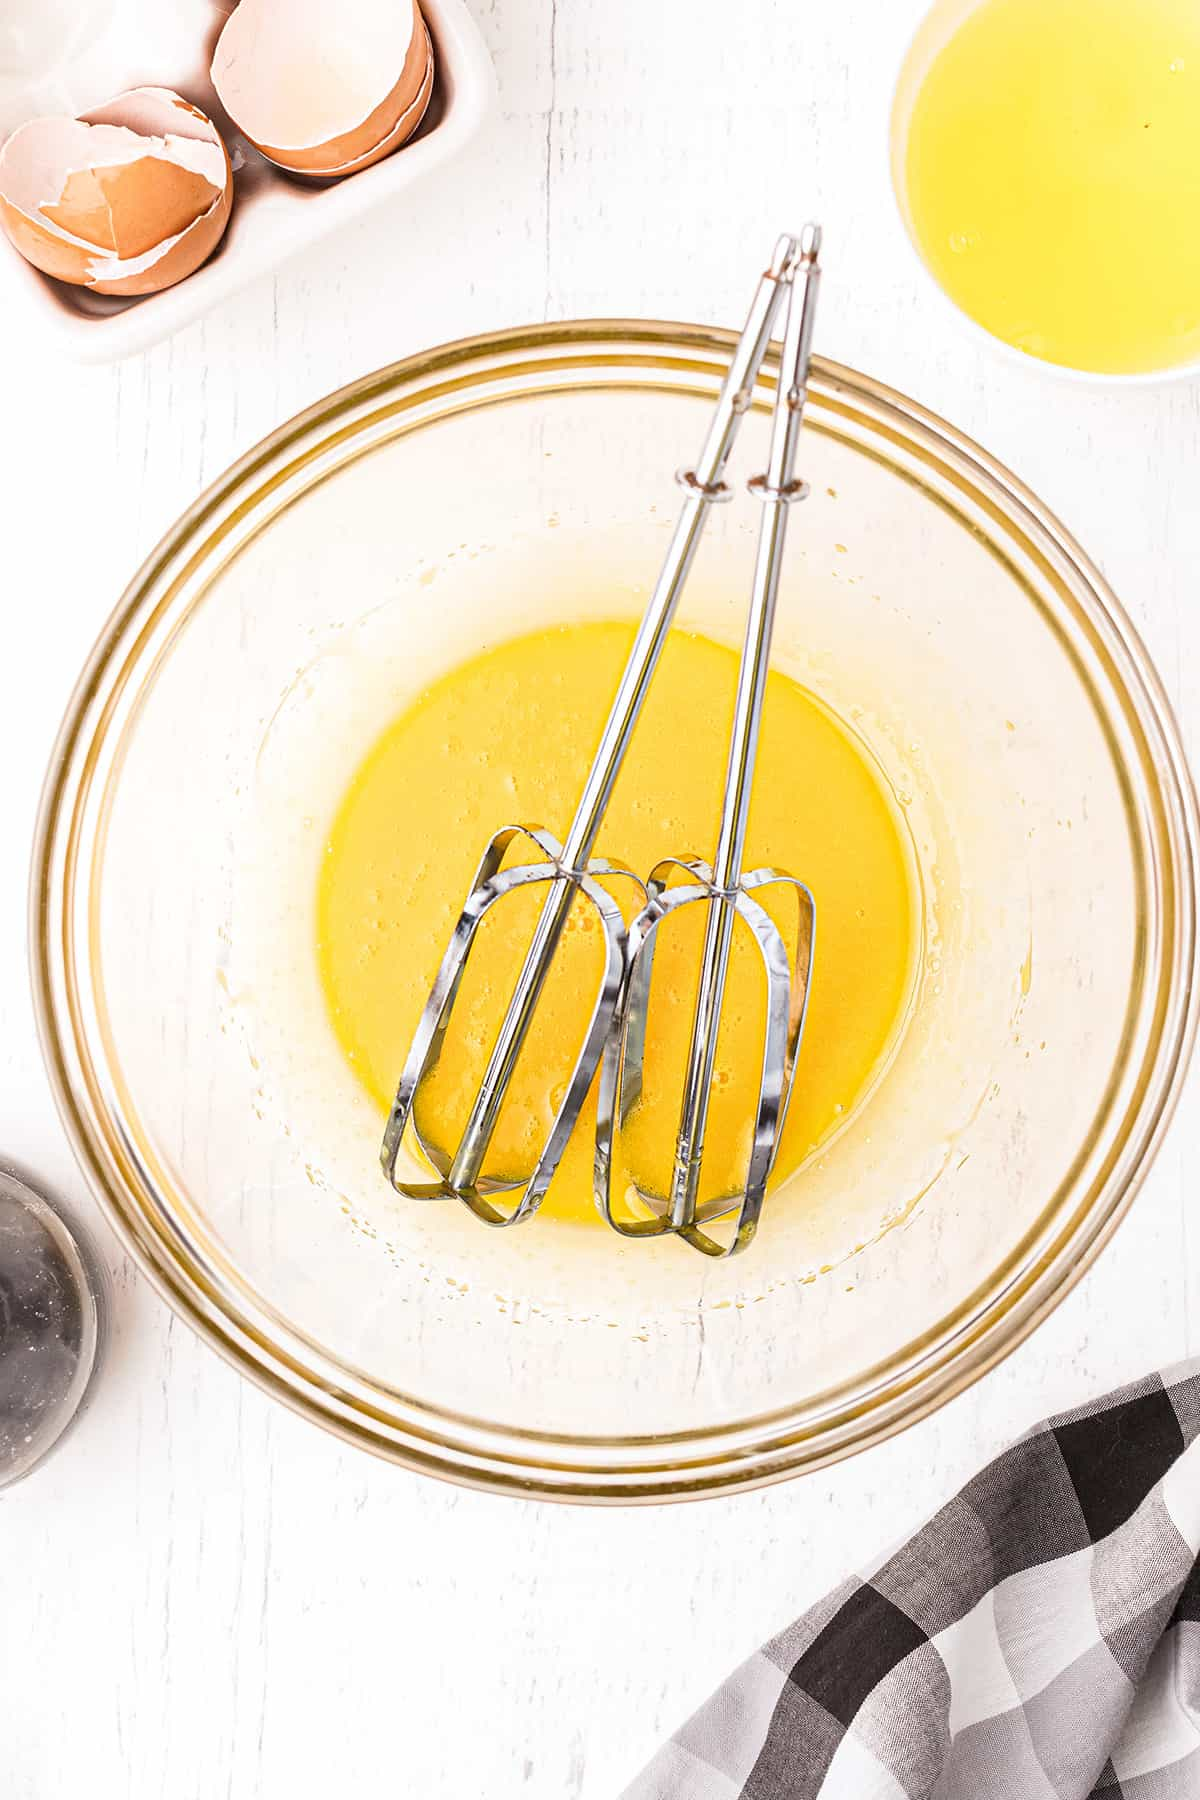 A mixing bowl holding egg yolks and mixer beaters.